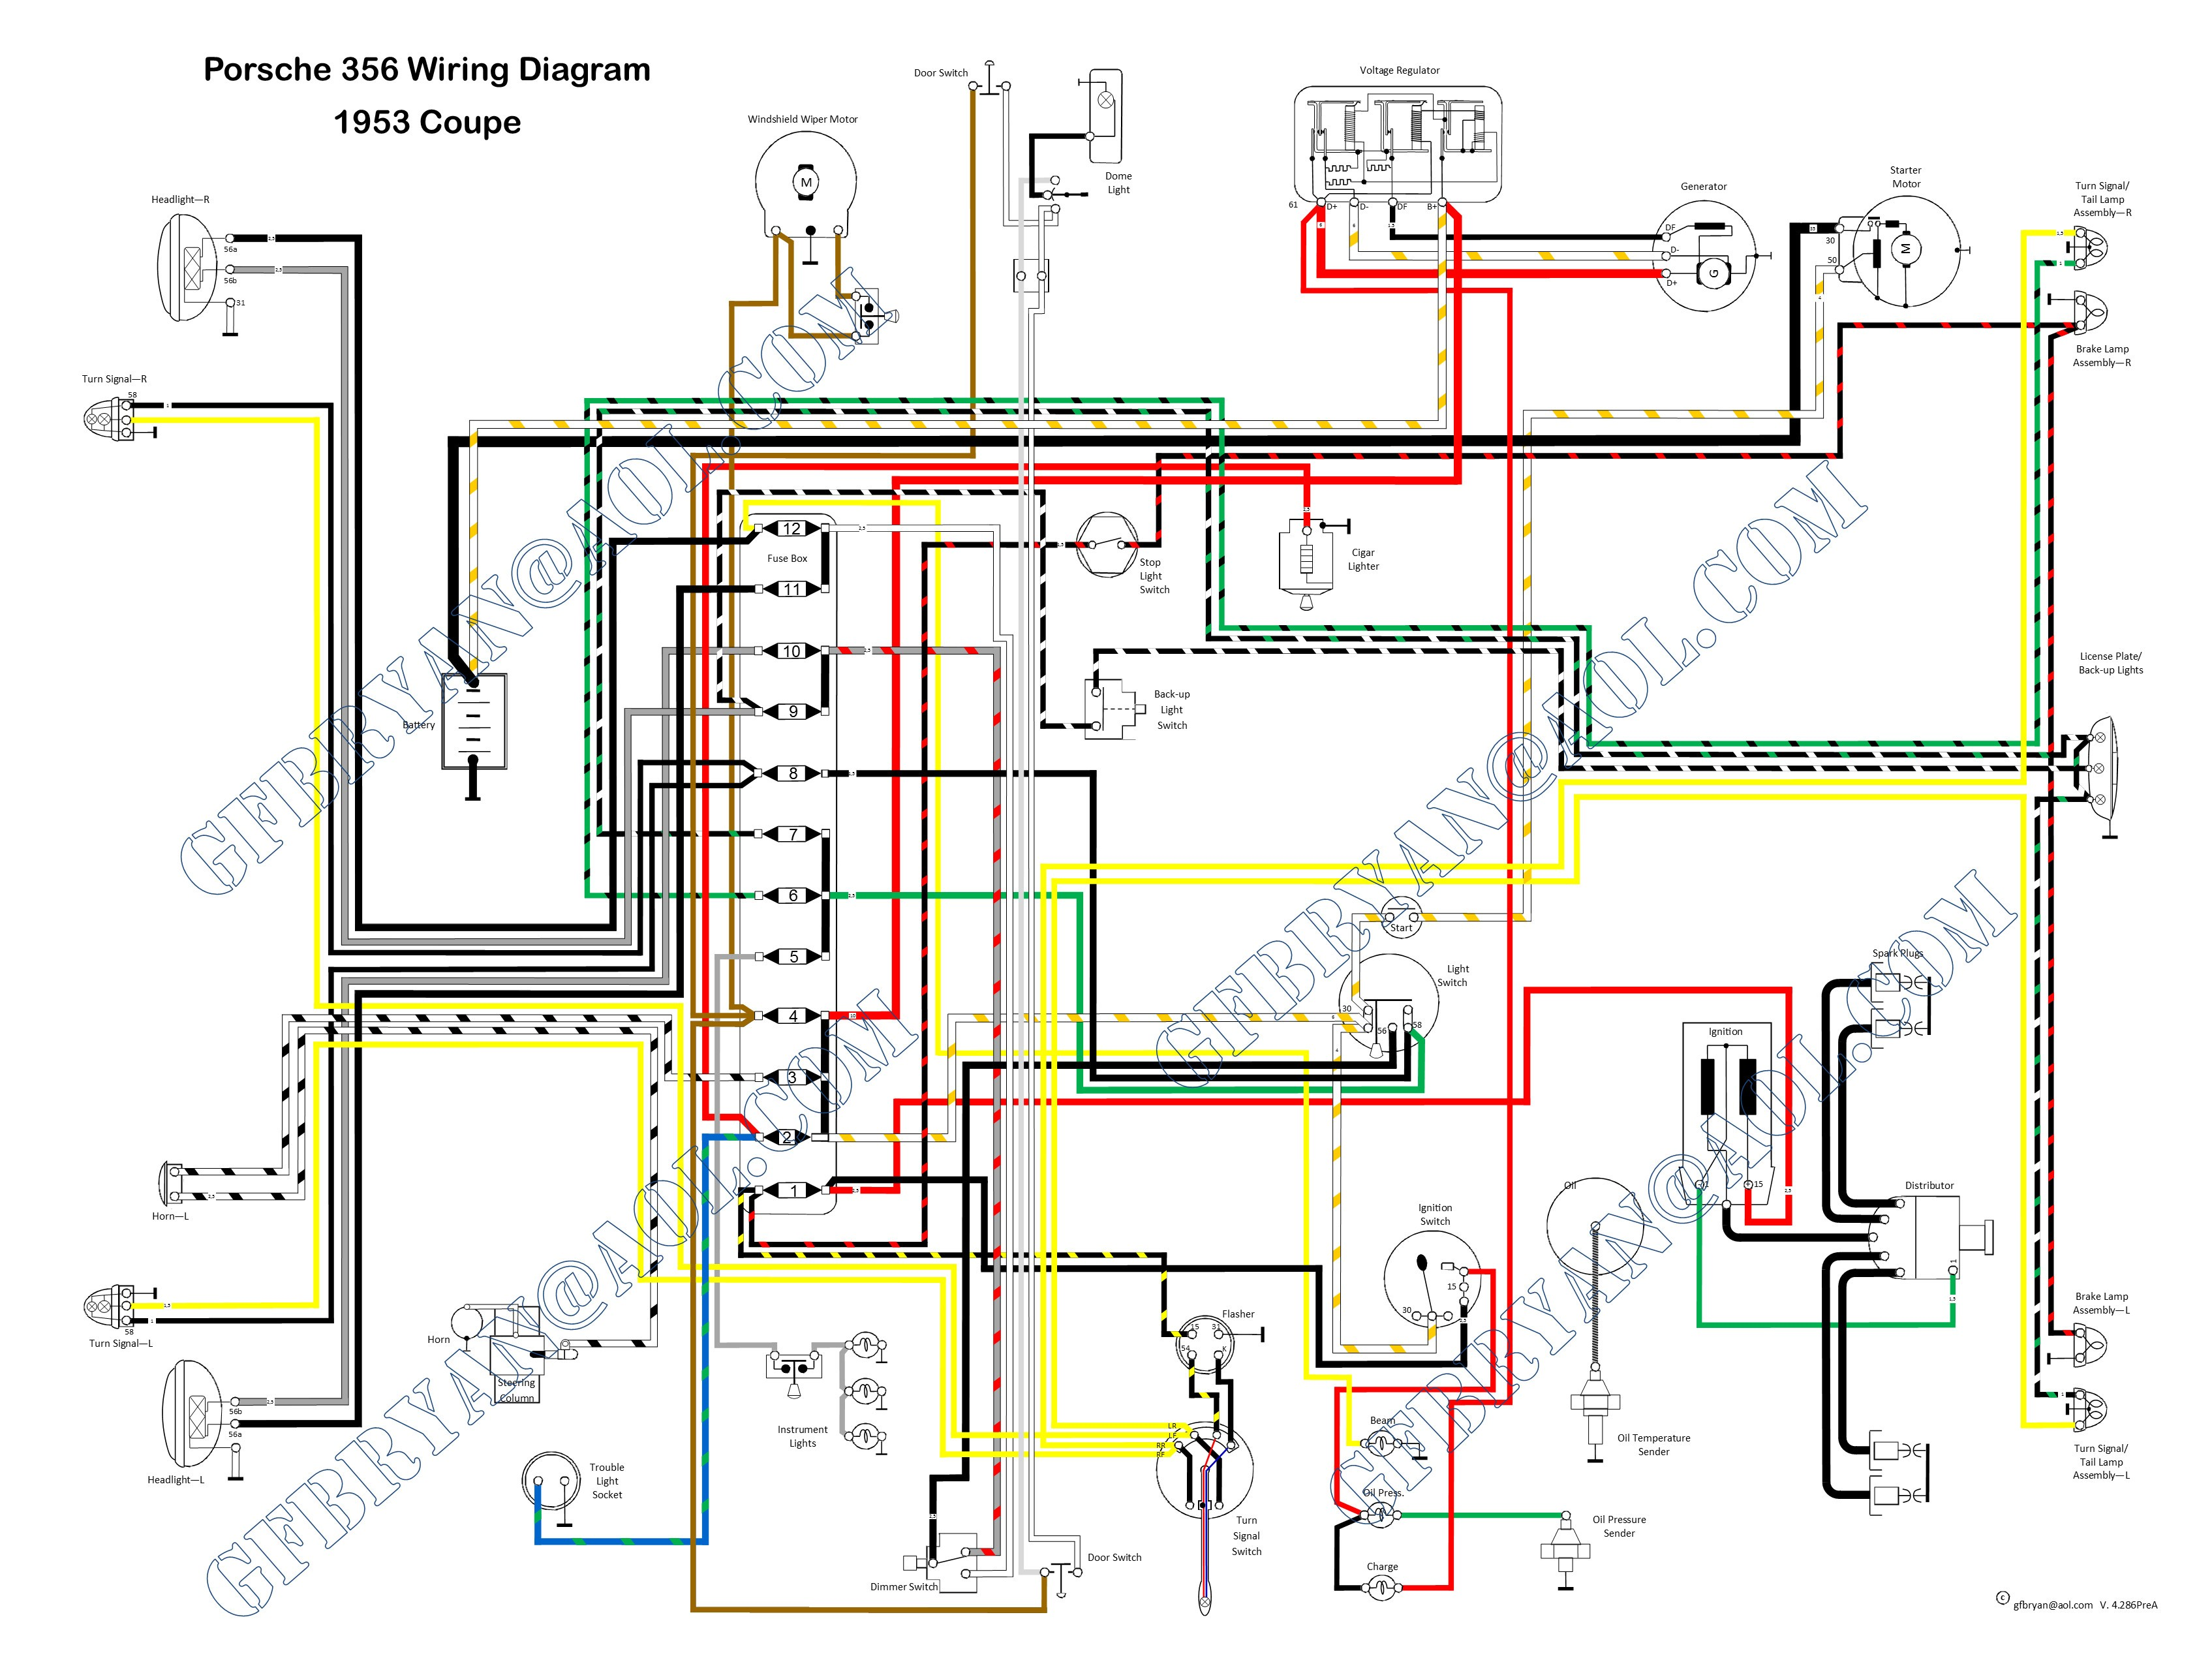 240v photocell wiring diagram 480v cell wiring diagram cell switch